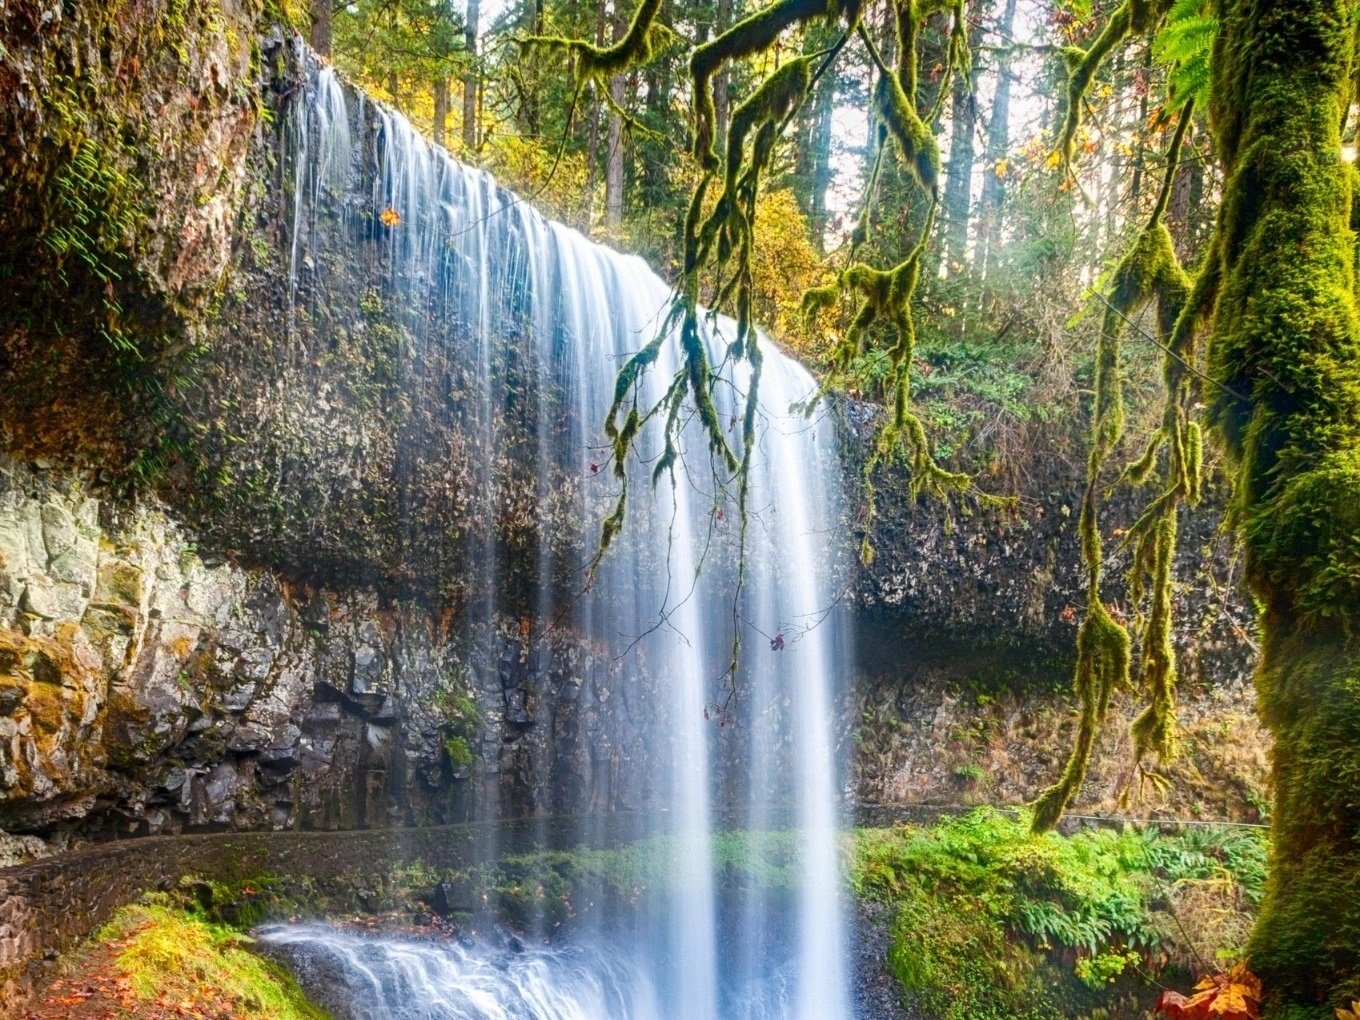 Lower South Falls | Silver Falls State Park